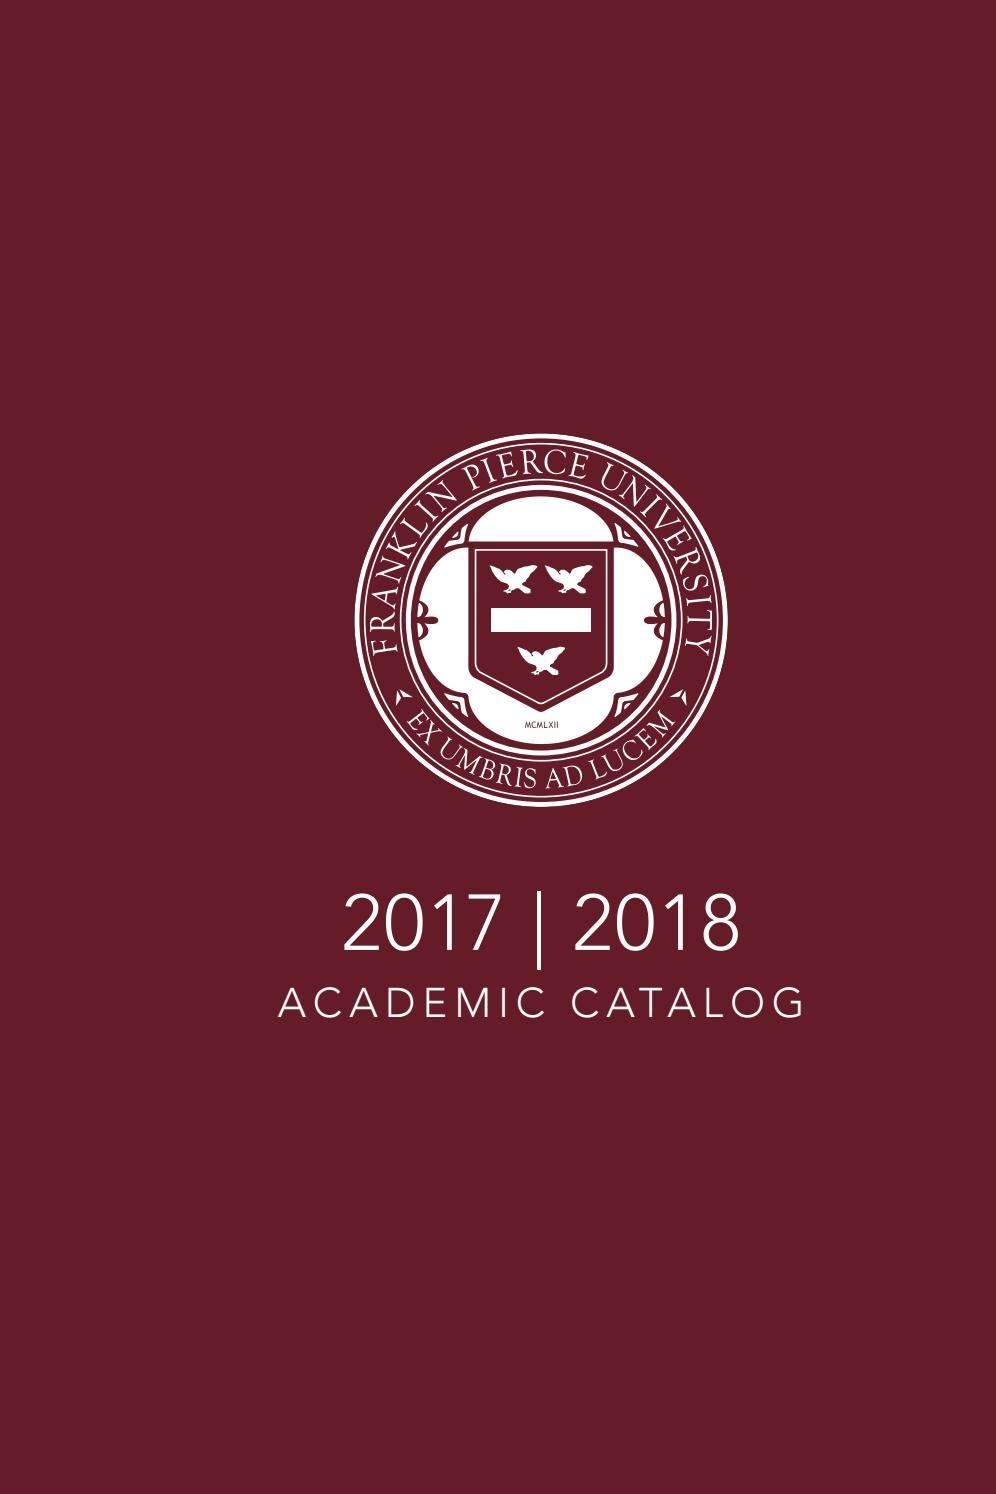 2017 - 2018 Academic Catalog - Franklin Pierce University by